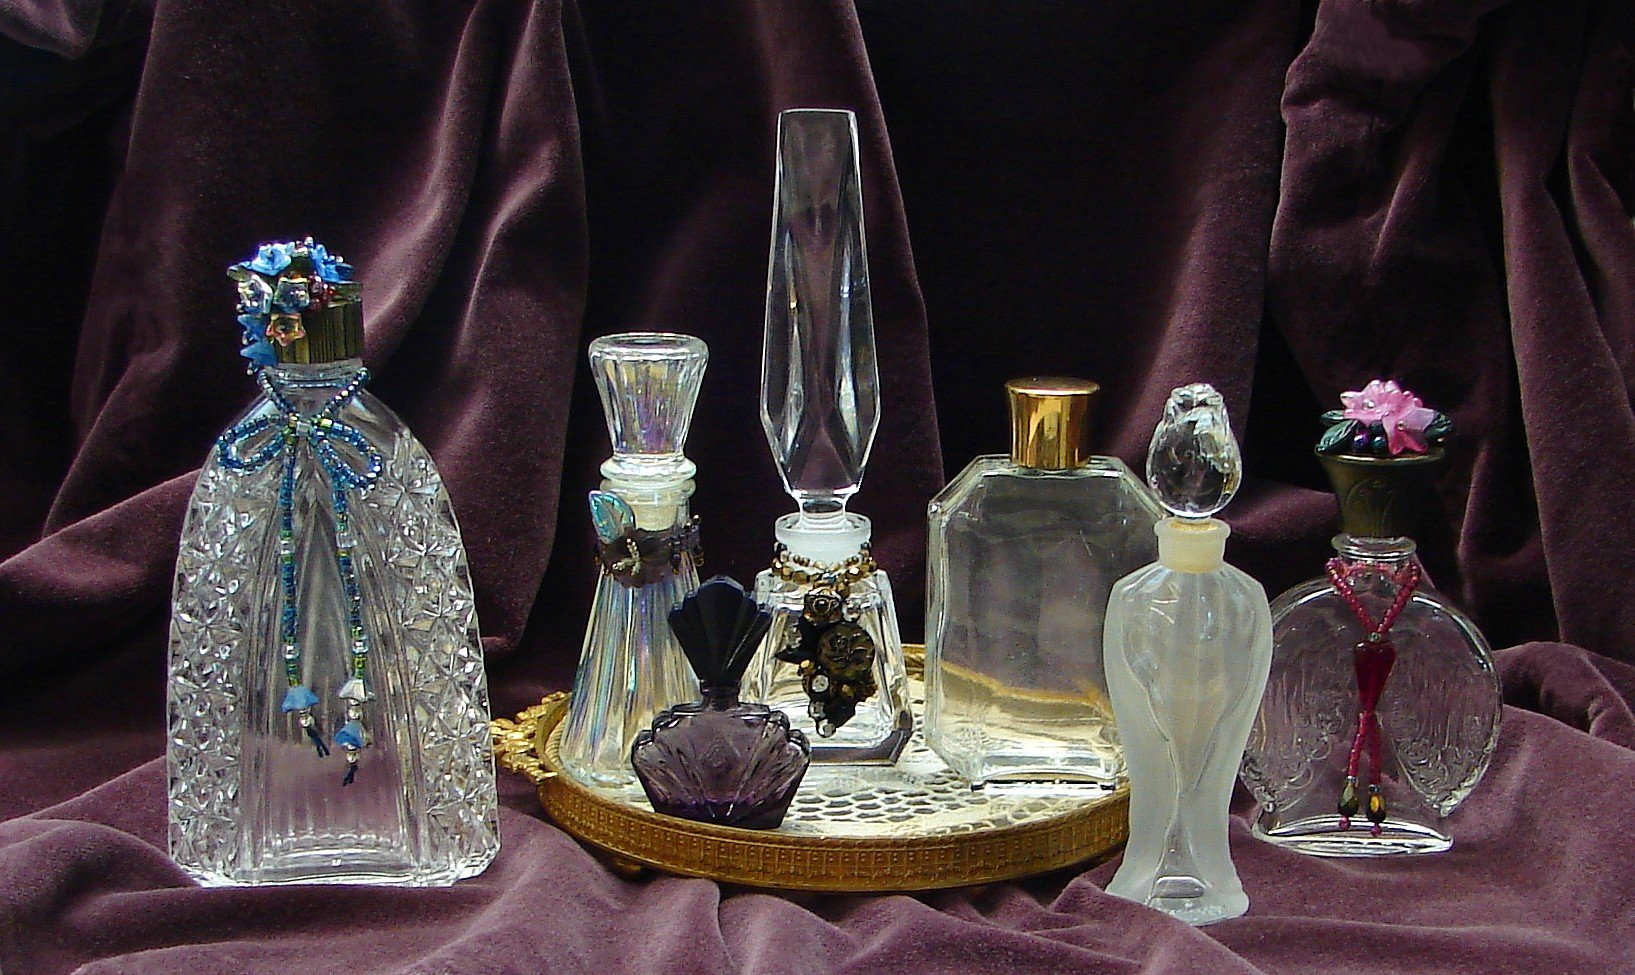 Vintage perfumes does the fragrance deteriorate